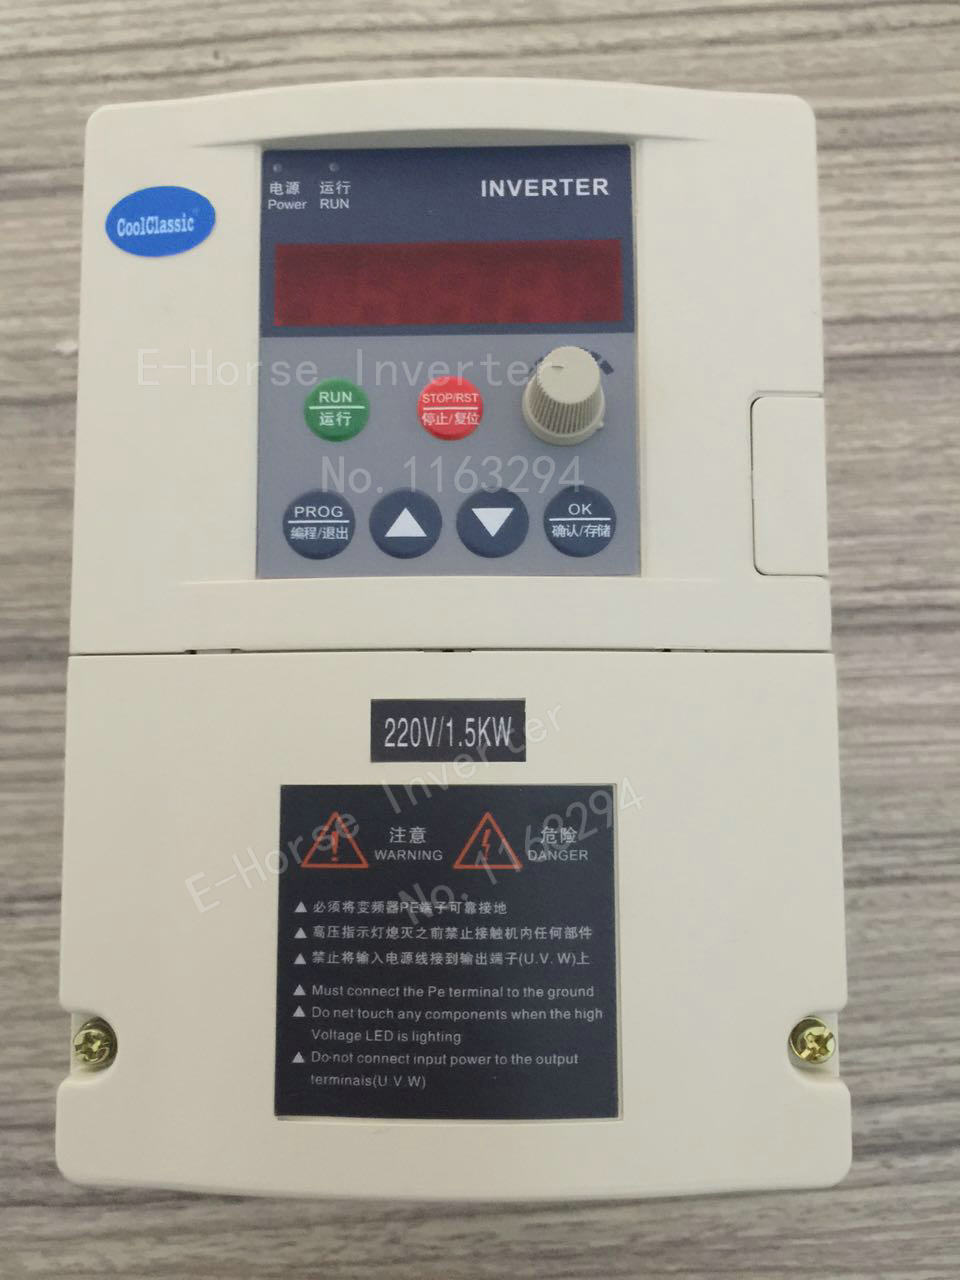 Frequency Converter ZW-S2015 1.5KW  CoolClassic Inverter single phase Input 220v  3-phase output motor with control line zw 689 в москве